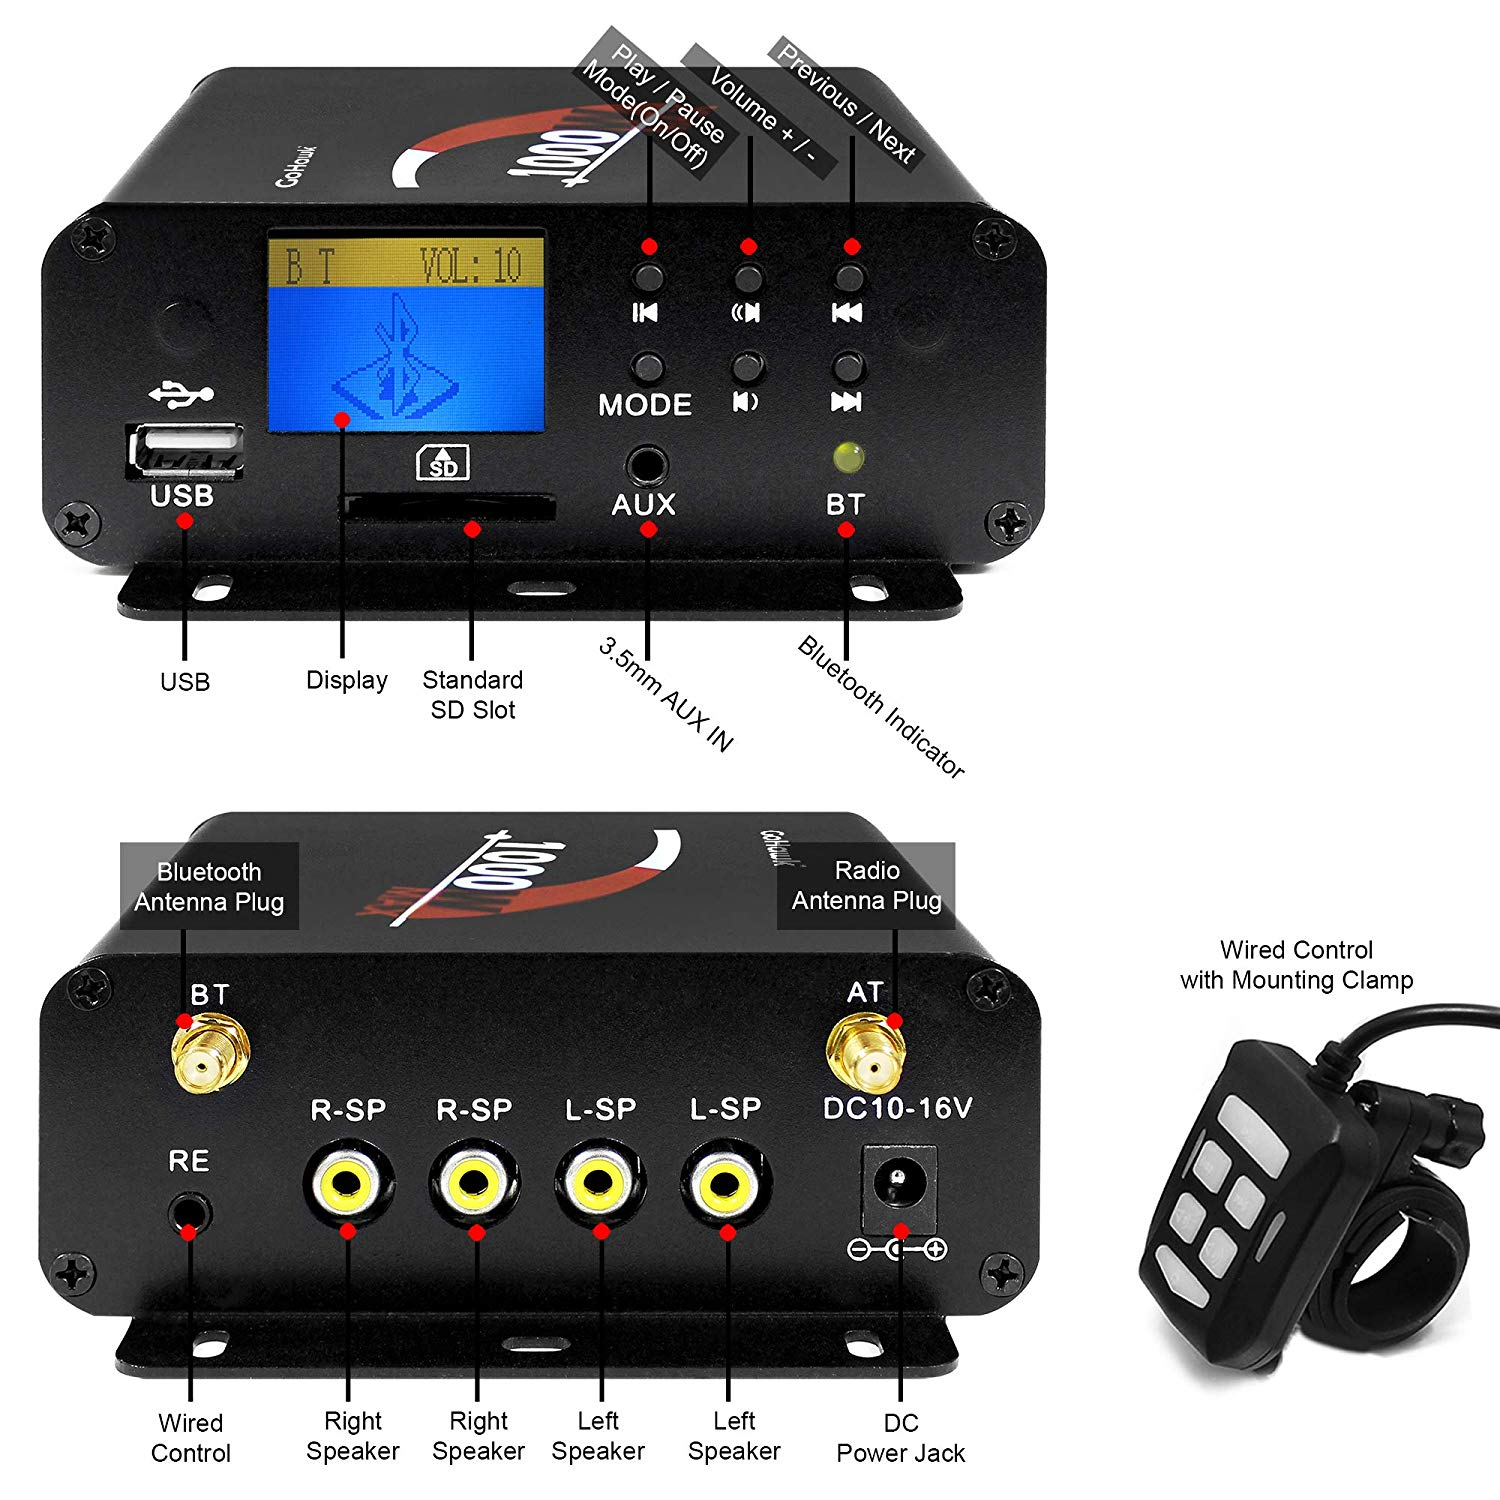 Image 5 - Aileap 1000W Motorcycle Audio 4 Channel Amplifier Speakers System, Support Bluetooth, AUX, FM Radio, SD Card, USB Stick (Black)Motorcycle Audio   -